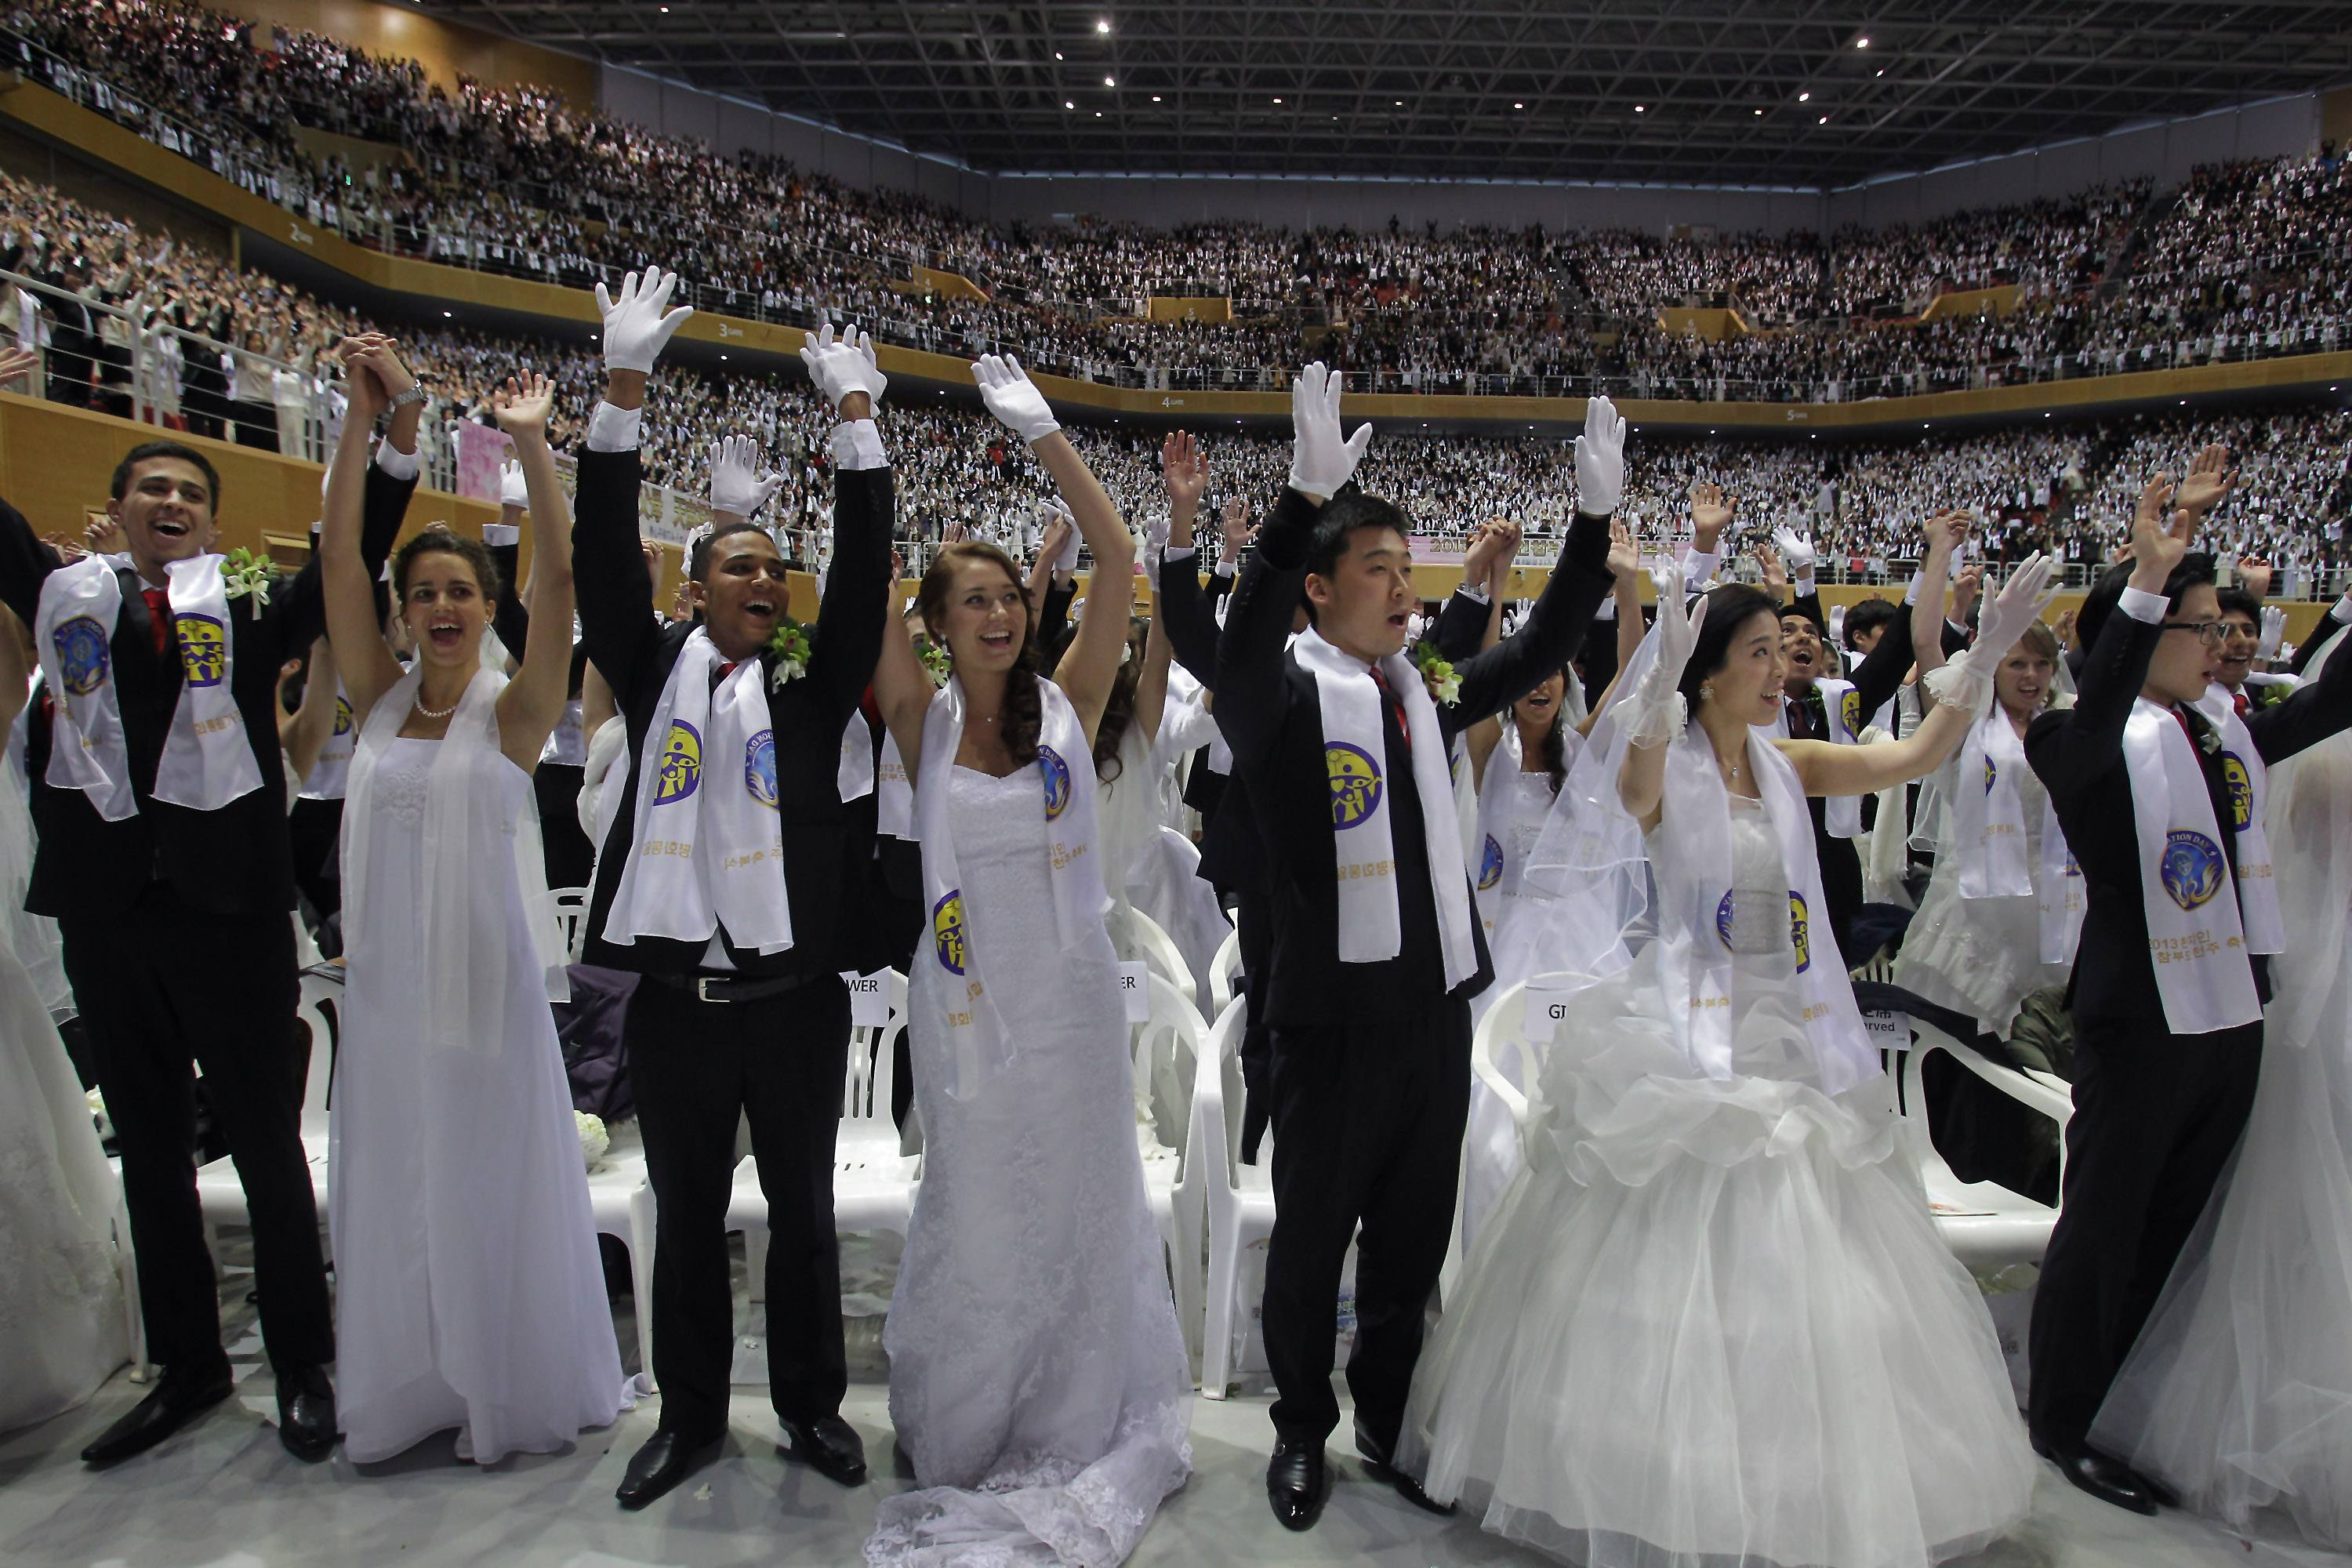 Unification Church Holds Mass Wedding